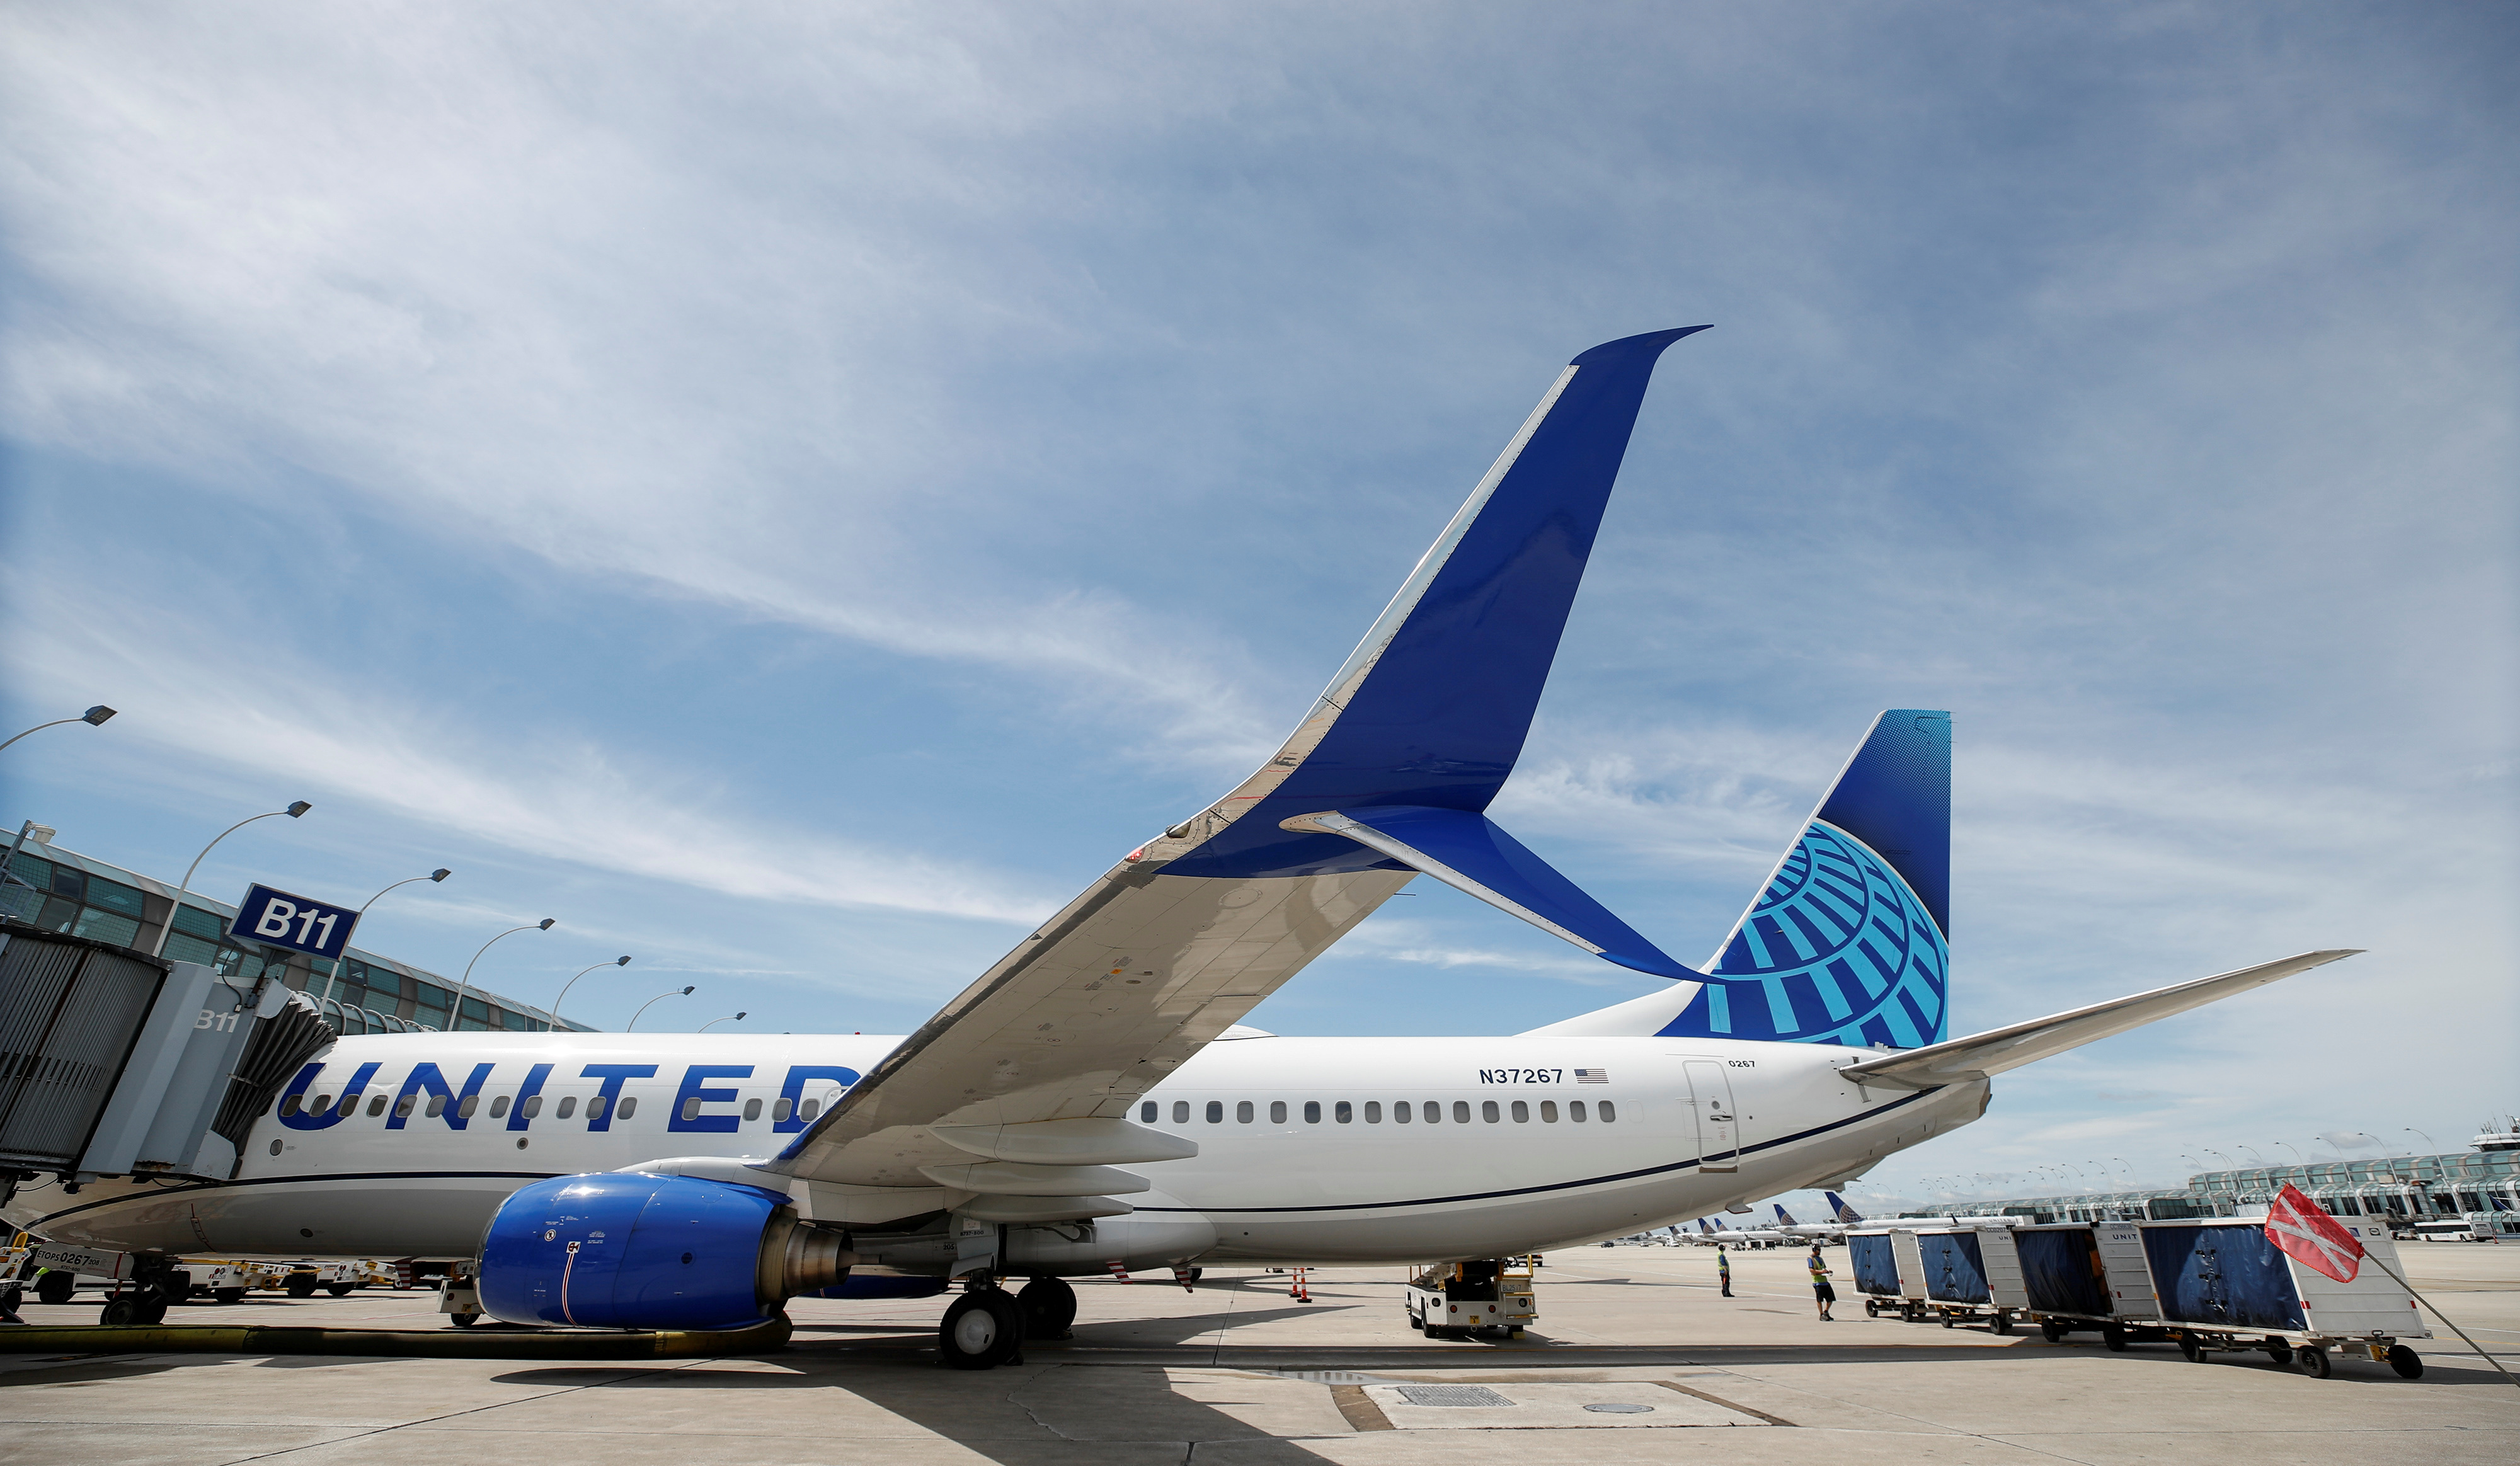 A United Airlines Boeing 737-800 sits at a gate after arriving at O'Hare International Airport in Chicago, Illinois, U.S., June 5, 2019. REUTERS/Kamil Krzaczynski/File Photo